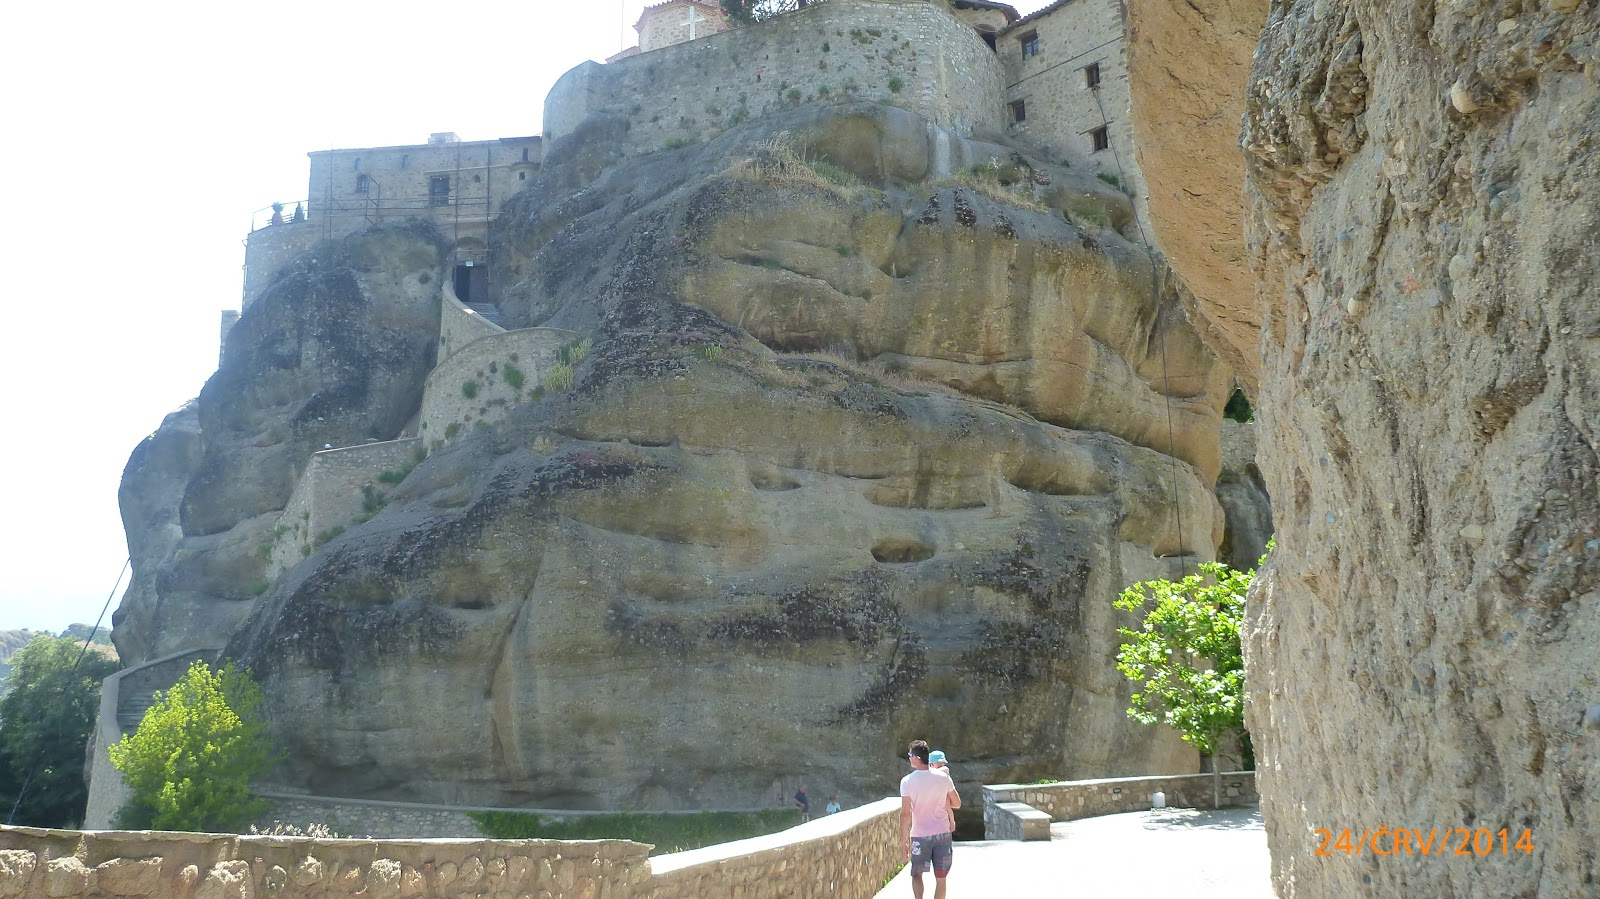 https://www.kempy-chaty.cz/sites/default/files/turistika/meteora.jpg